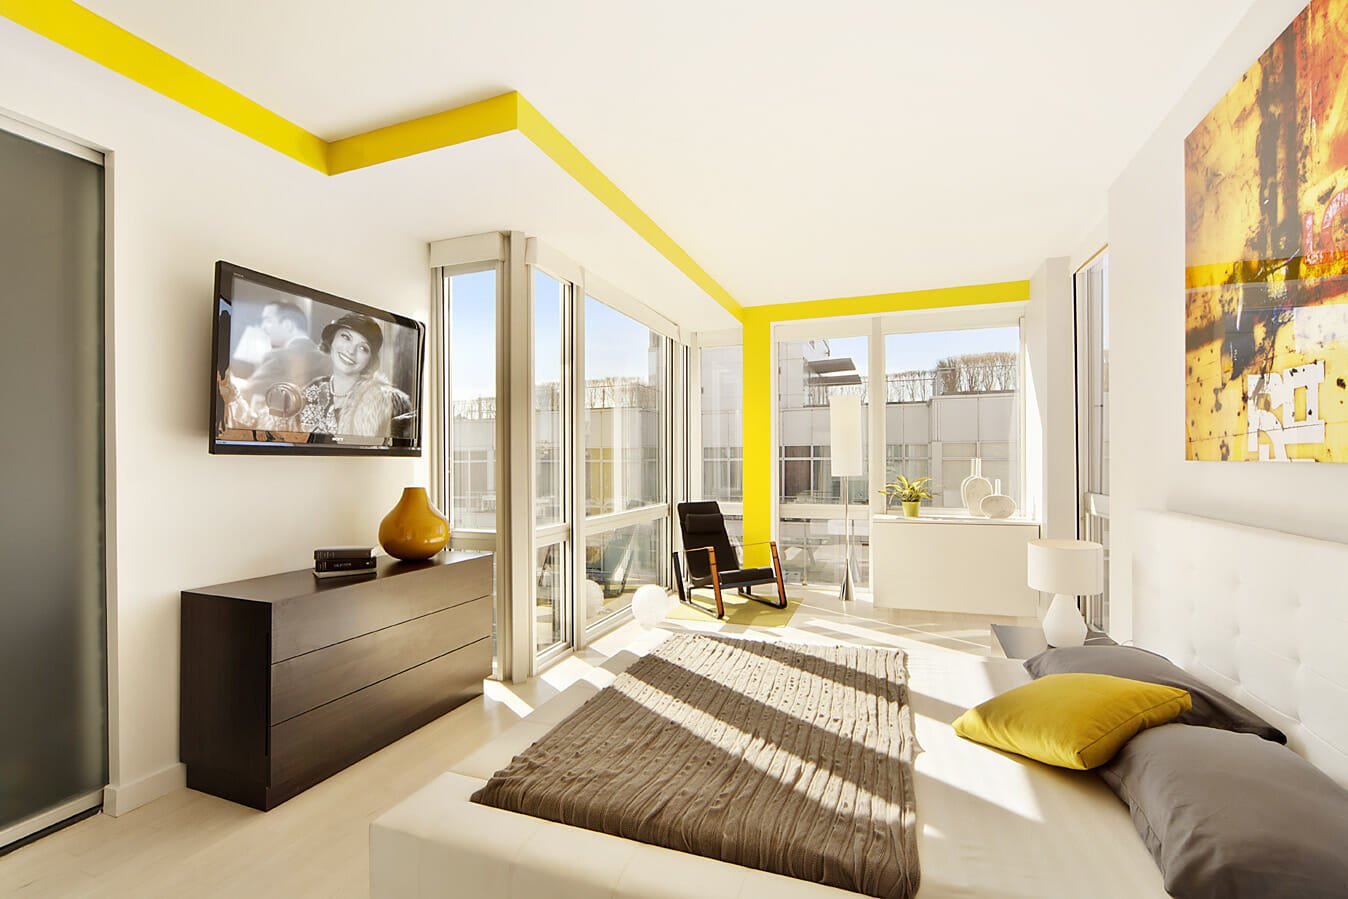 modern interior design with yellow and red